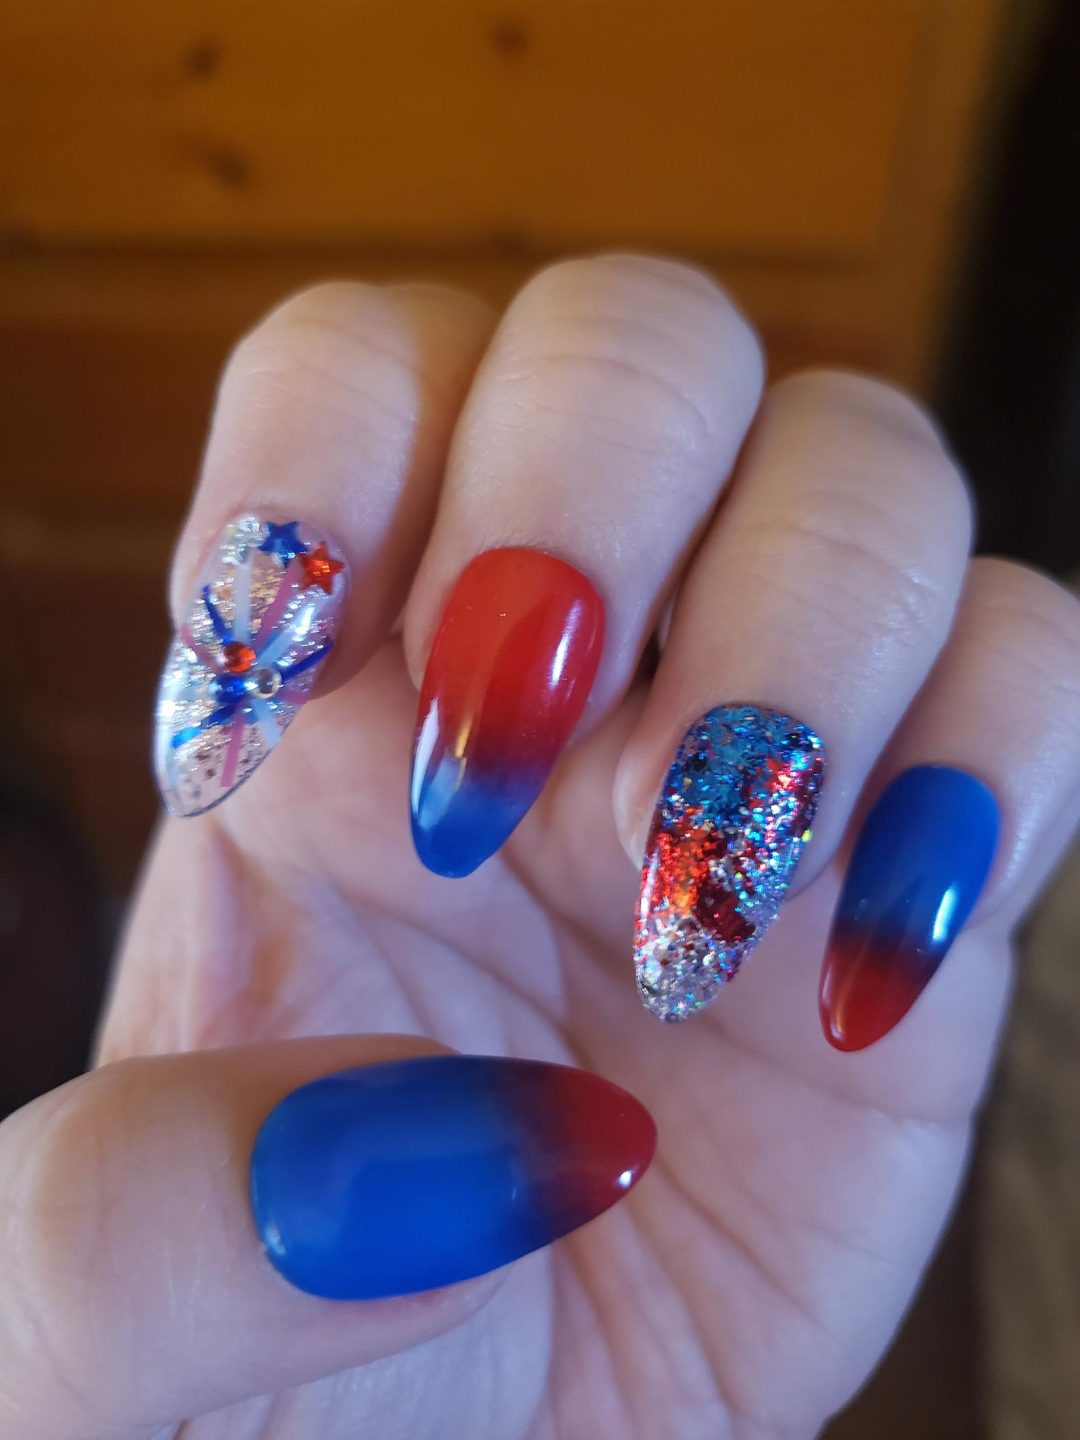 Red and blue ombre nails with glitter